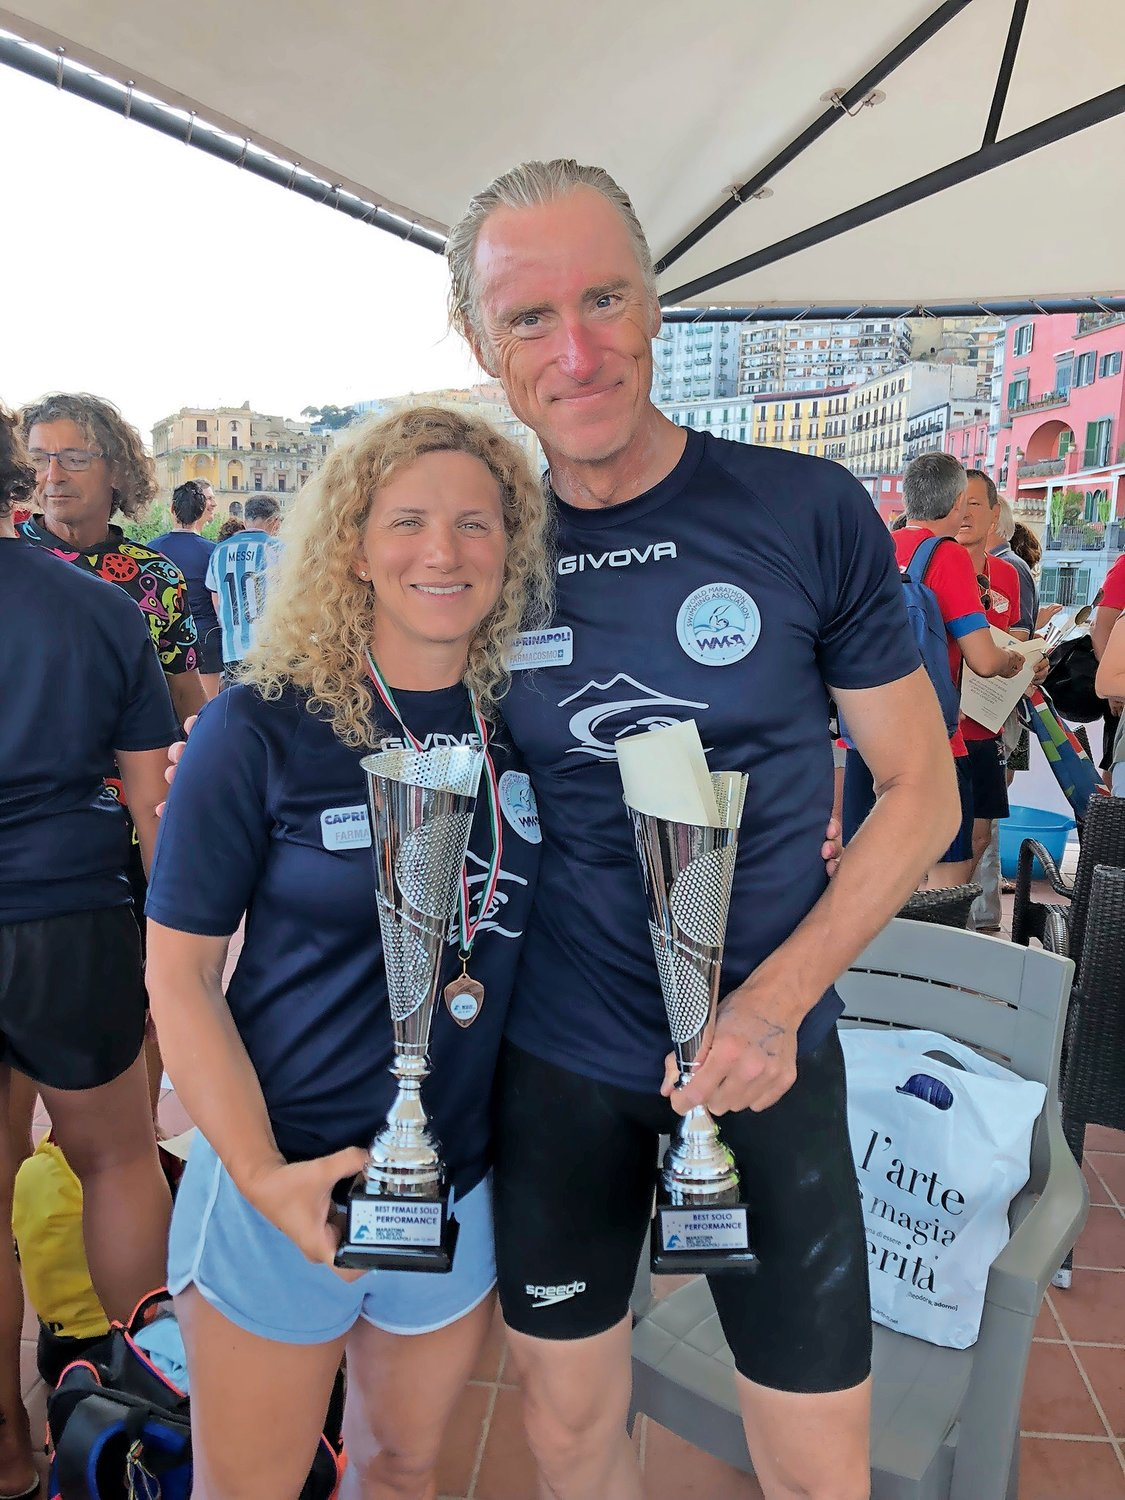 Rockville Centre resident Lori King finished second in the Maratona del Golfo in Italy on July 12. First-place finisher Olivier Delfosse, of Belgium, joined her.